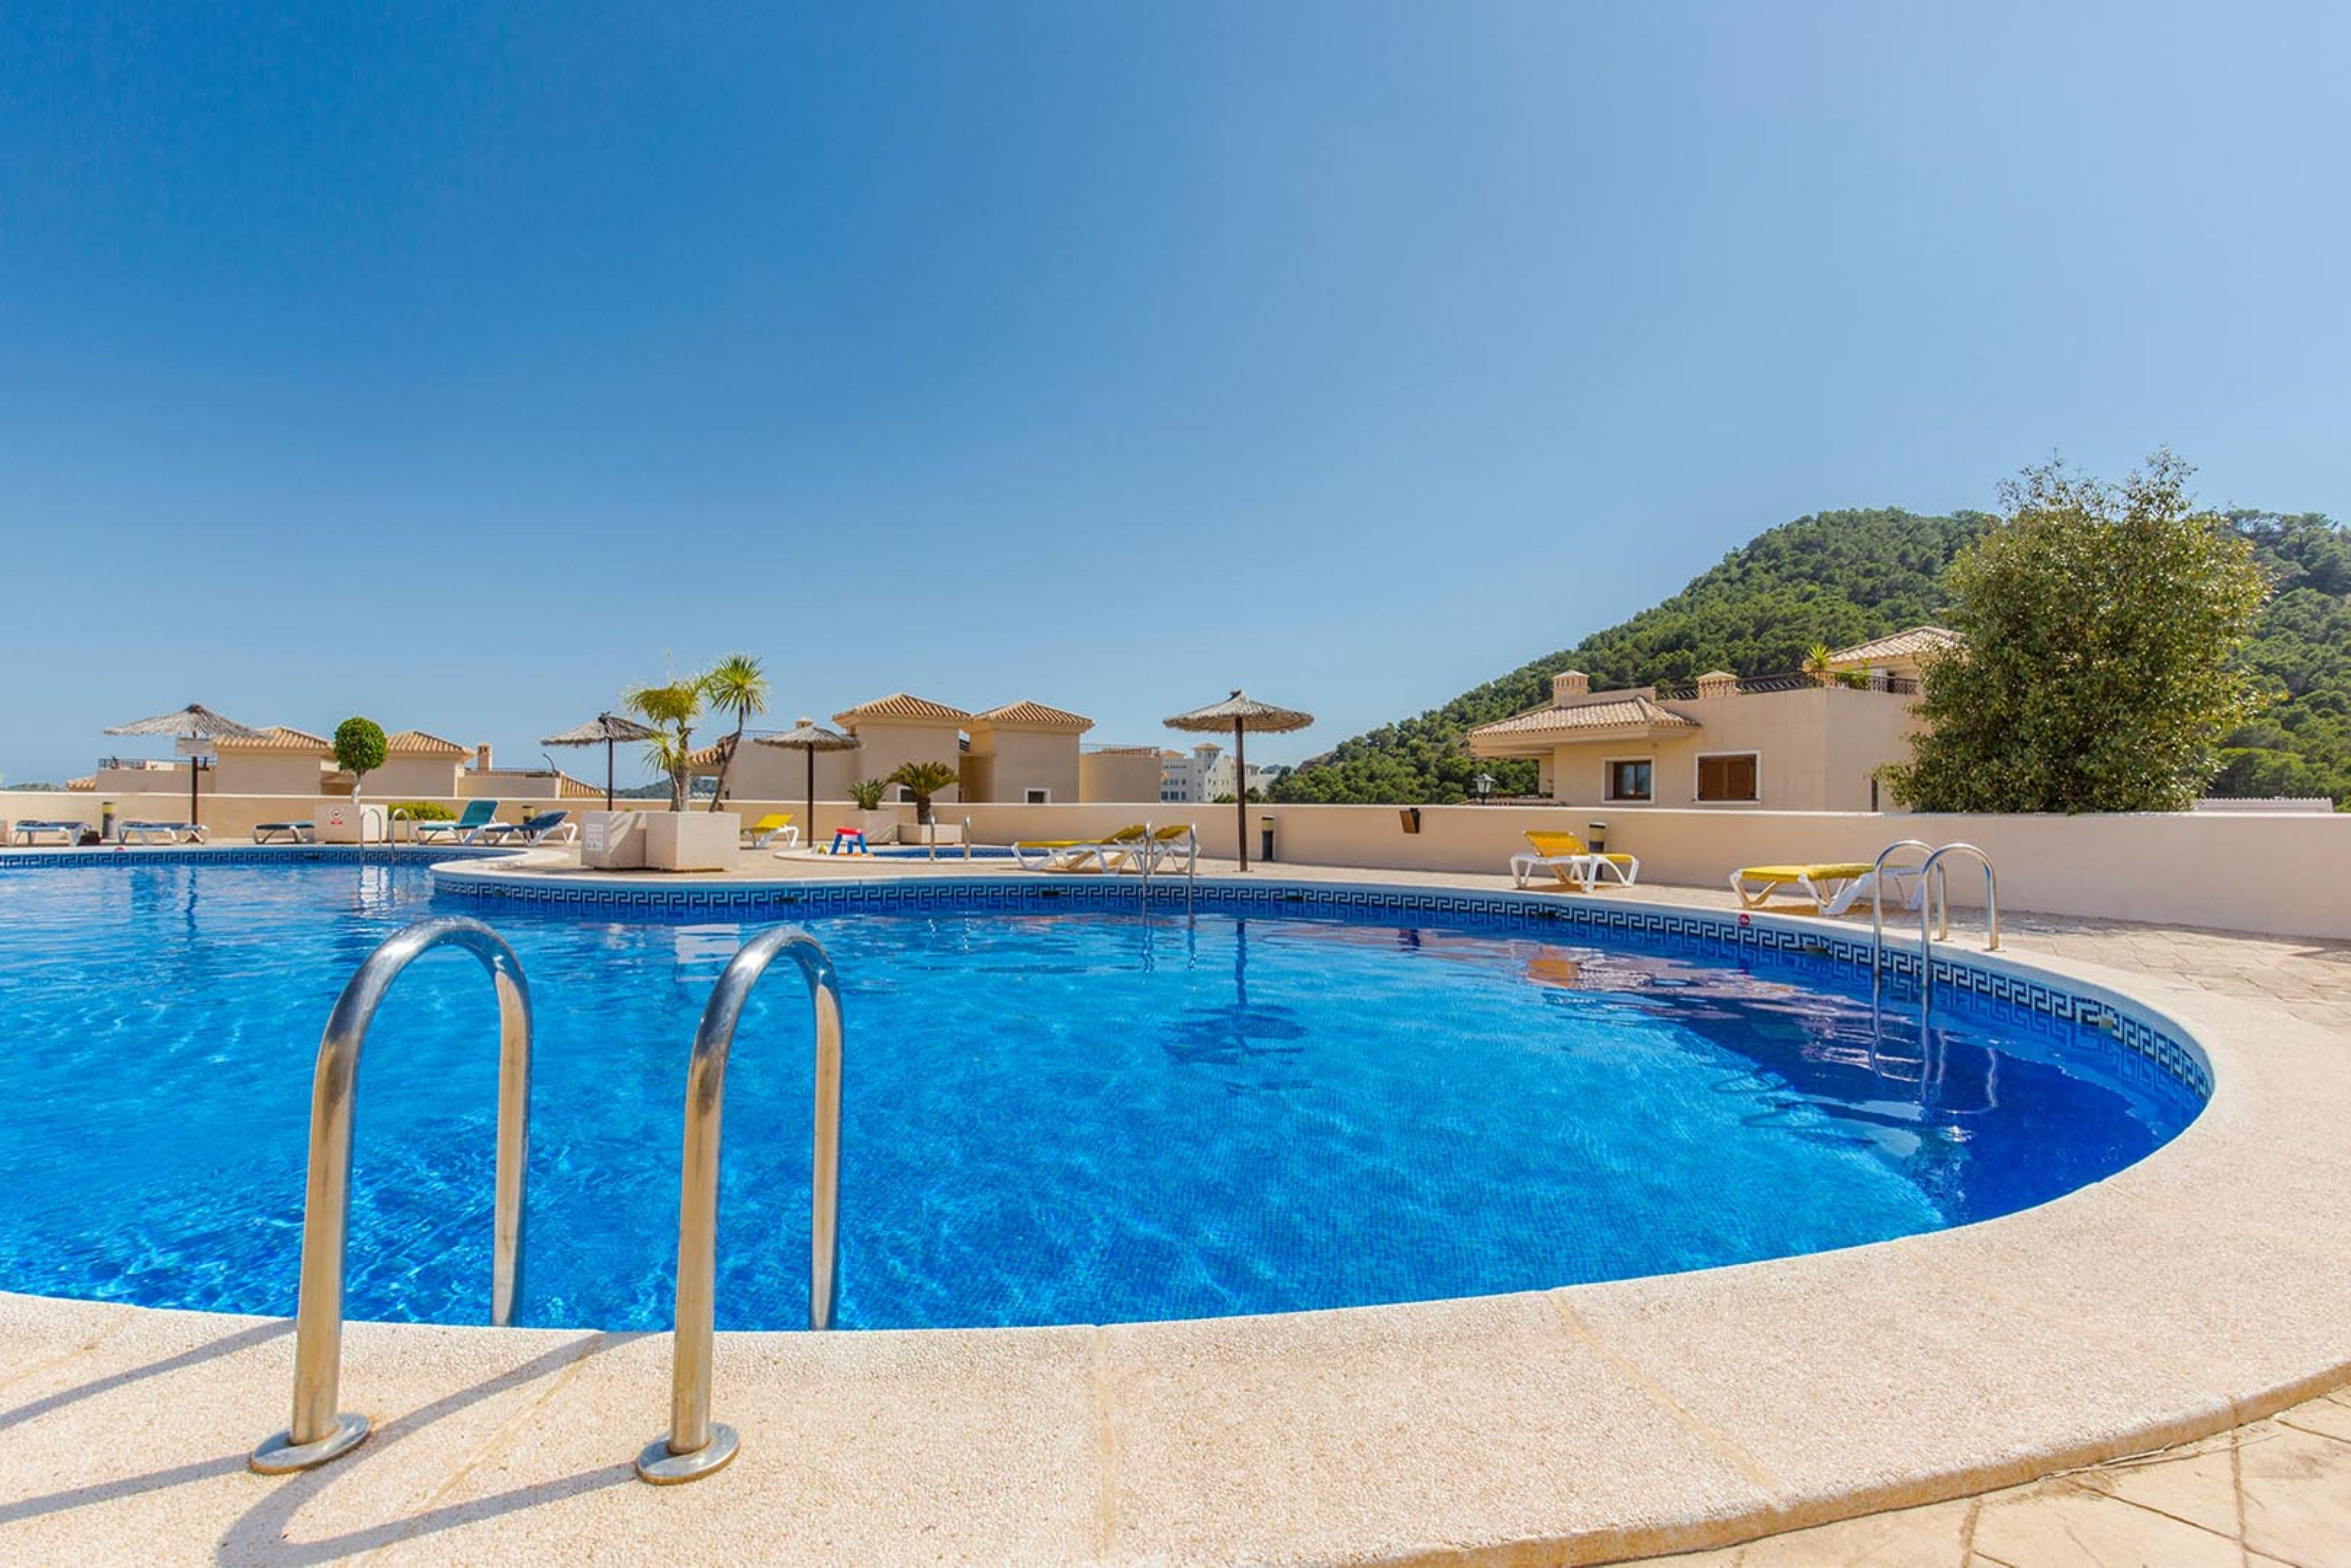 La Manga Club Resort - Buena Vista 580 2 Bedrooms, for rent